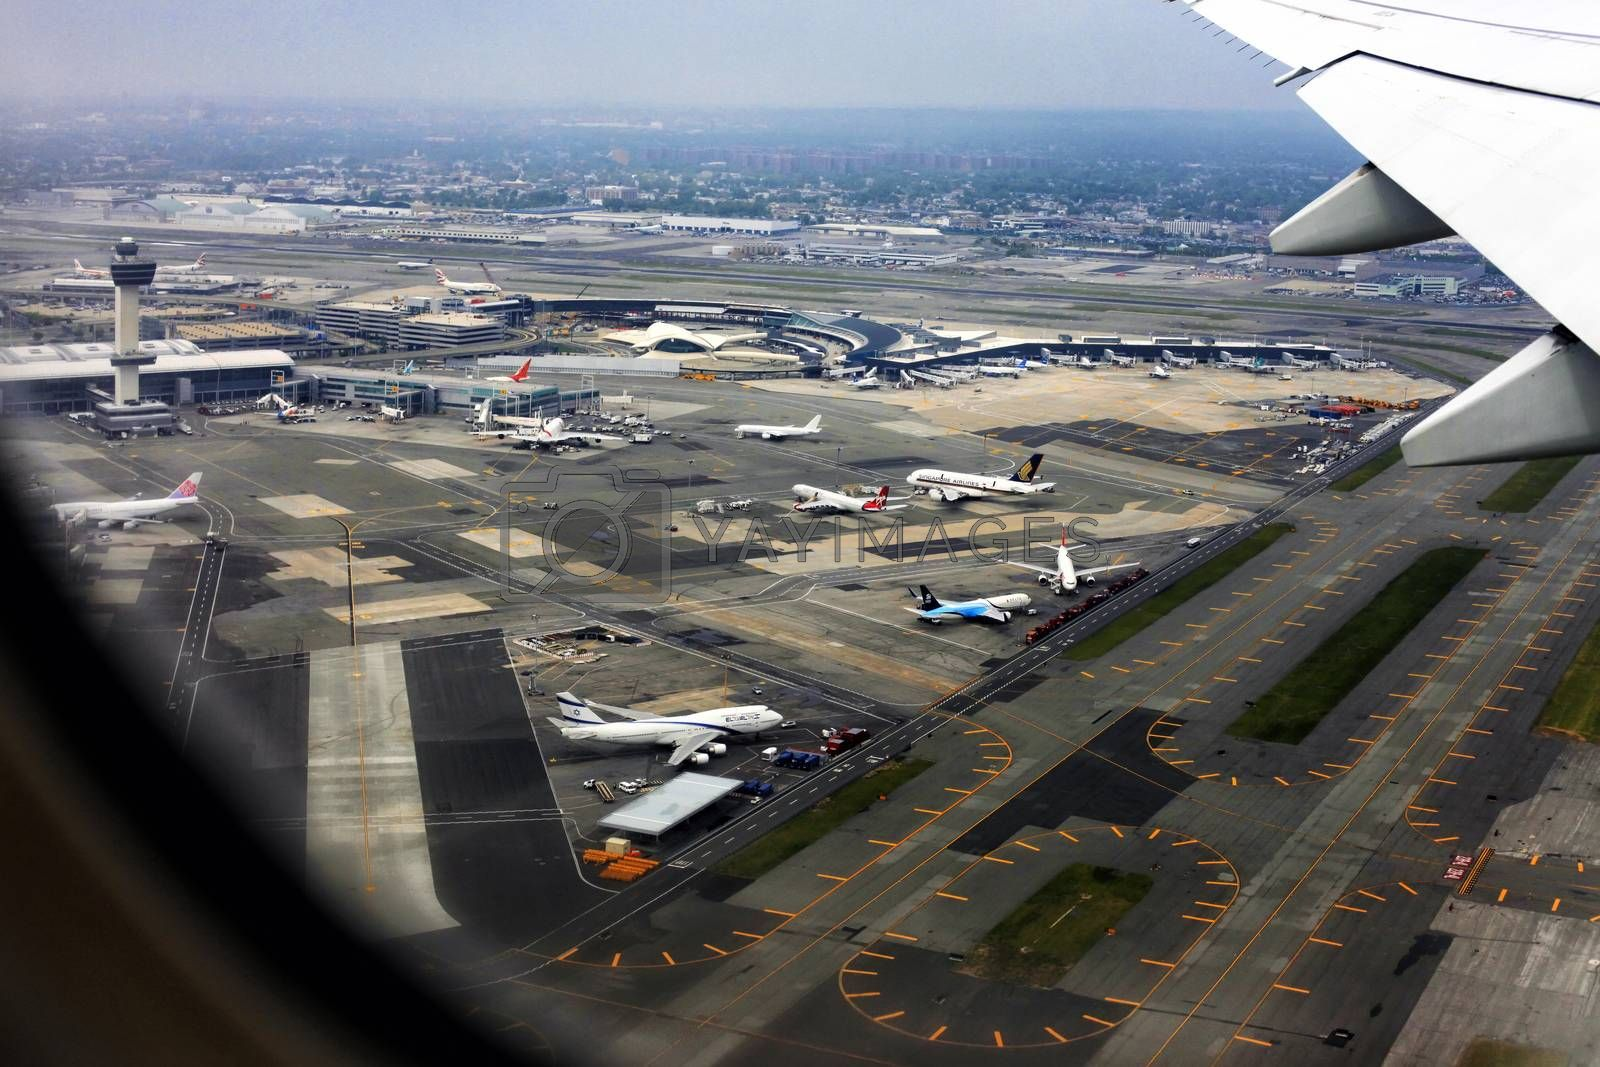 New York, NY, USA- May 20, 2013: Aerial view of John F. Kennedy International Airport in New York